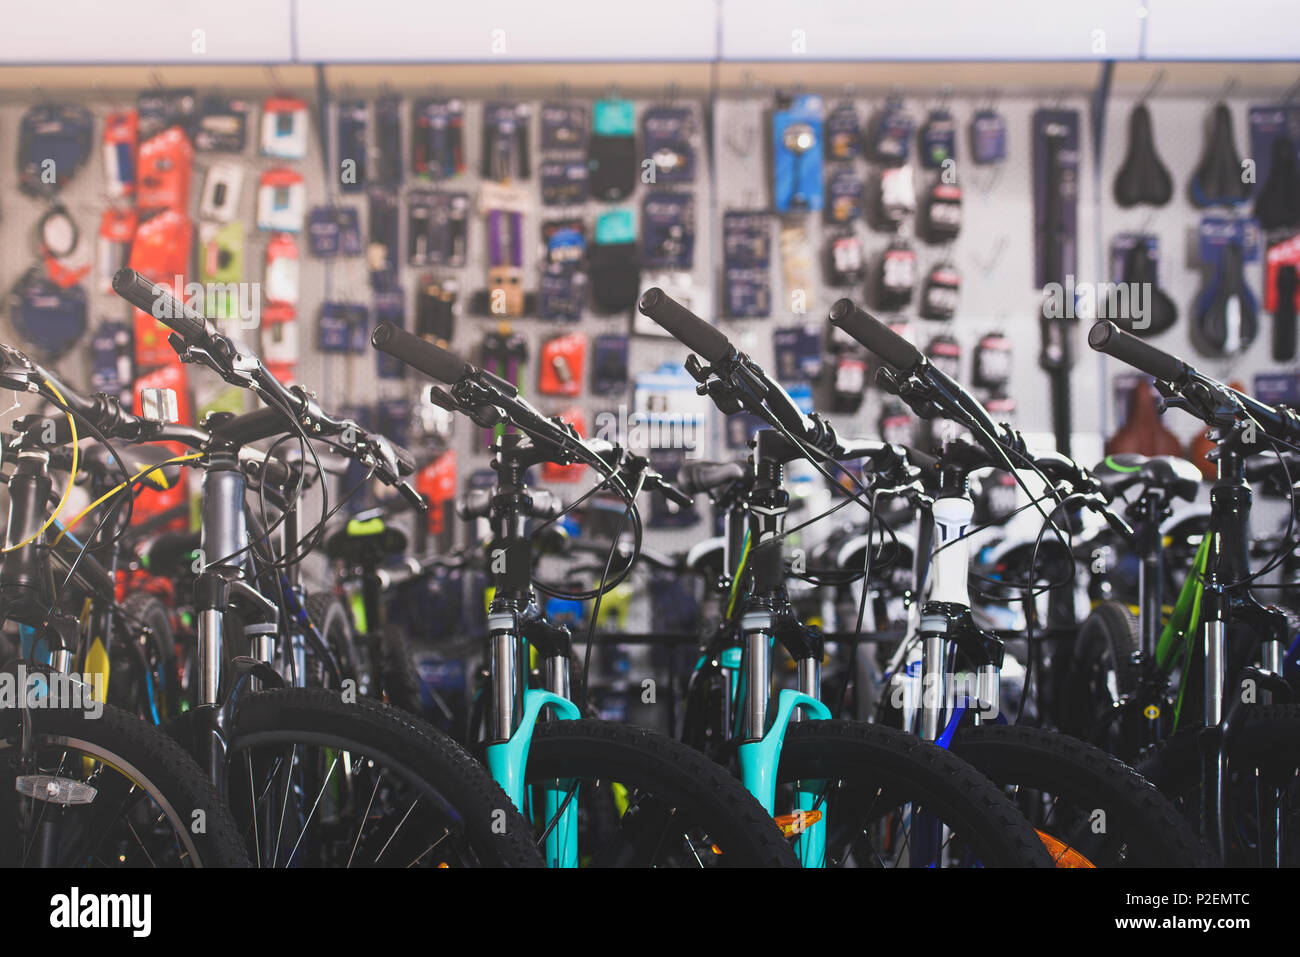 various modern bikes selling in bicycle shop - Stock Image